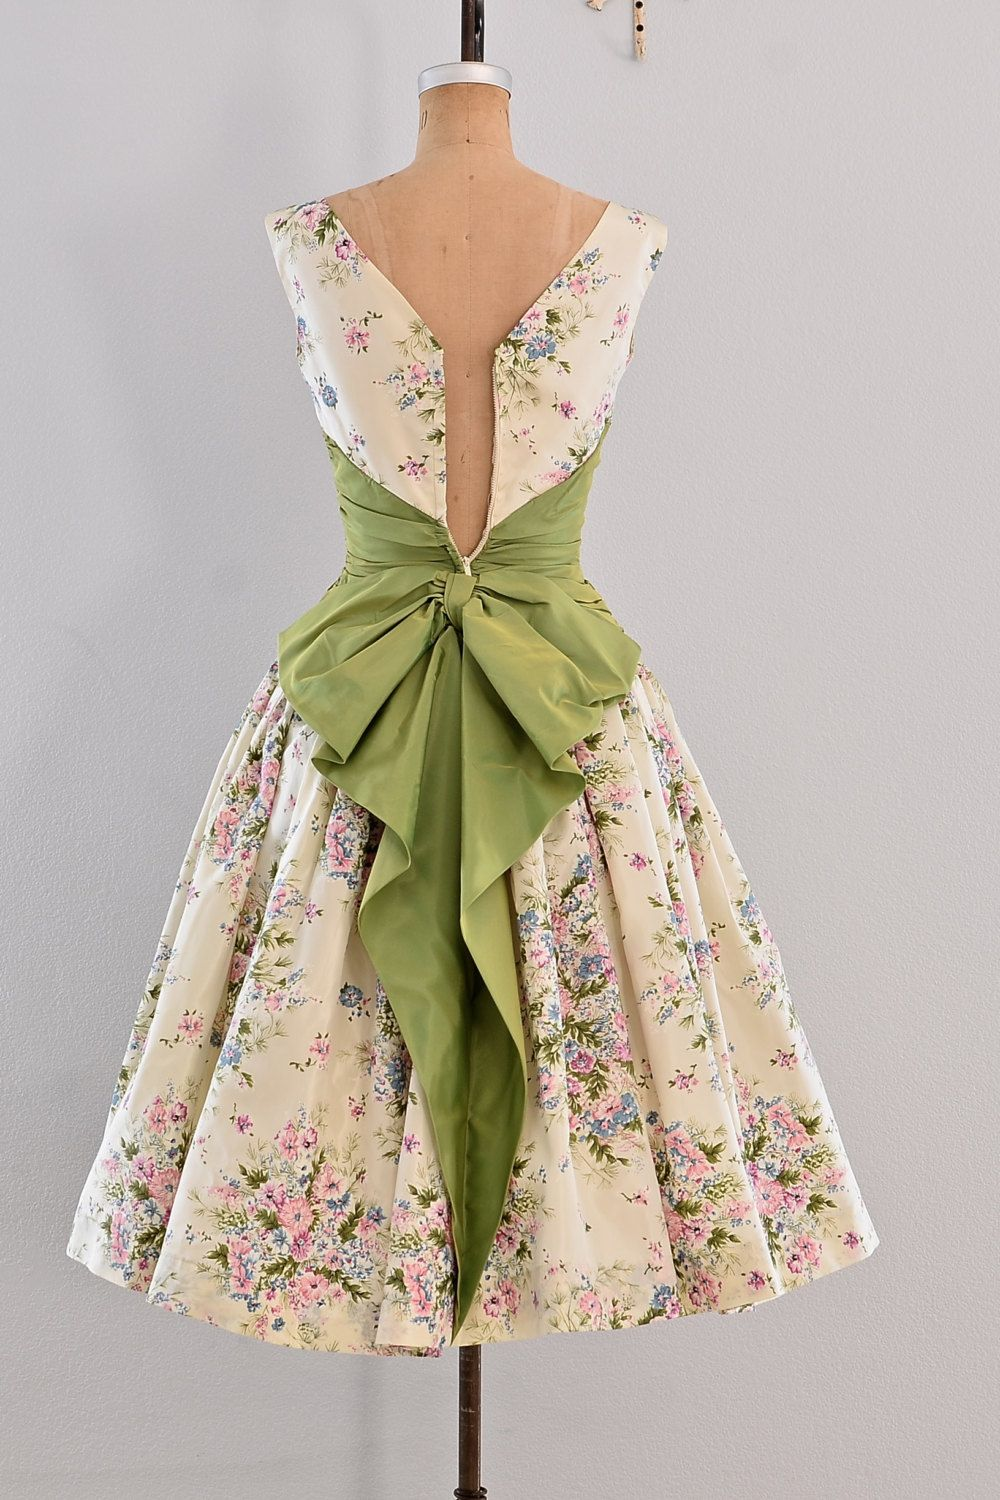 The dress images - Lovely Design But It Certainly Is Telling When The Dress Is So Fitted That It